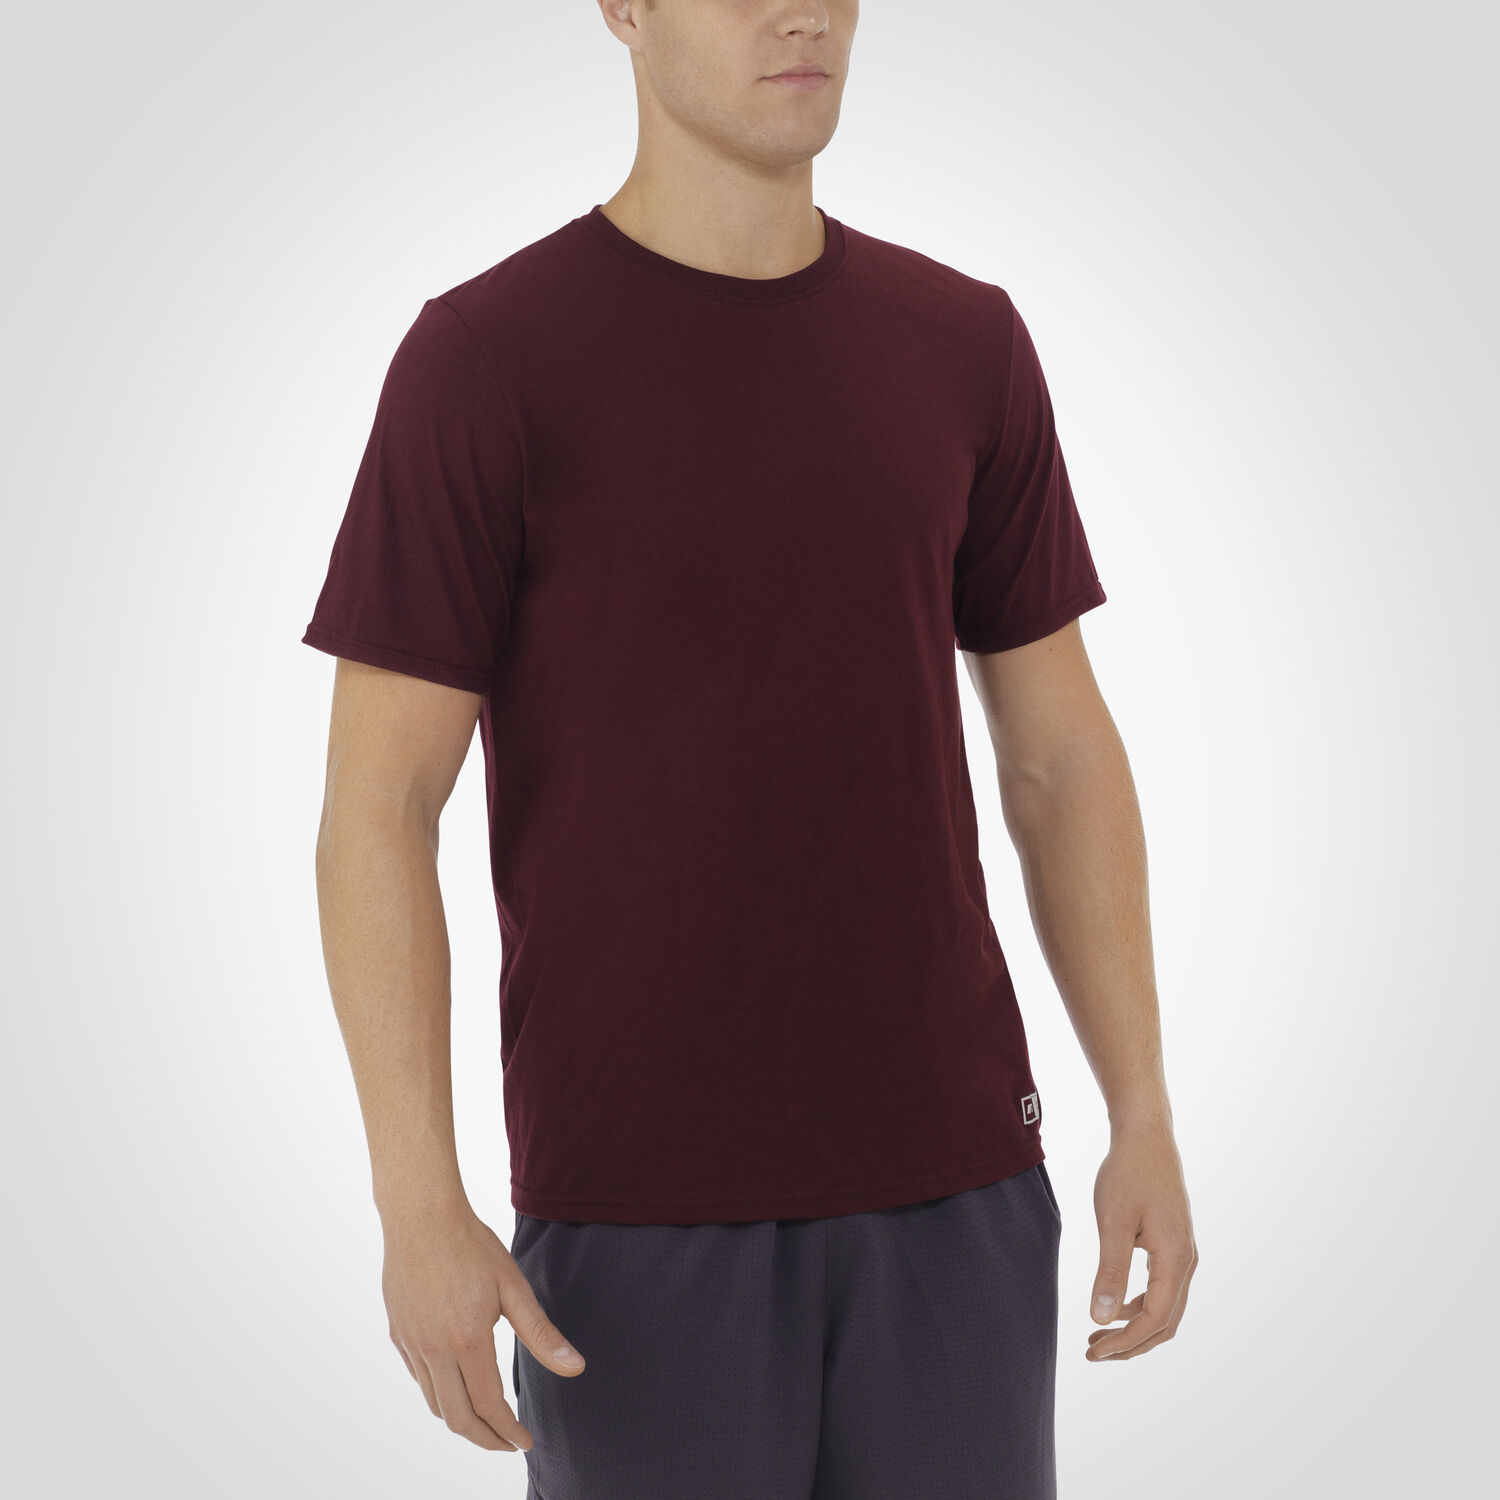 neck comforter t v modal tees shirts color comfortable cotton most s solid men high quality max item